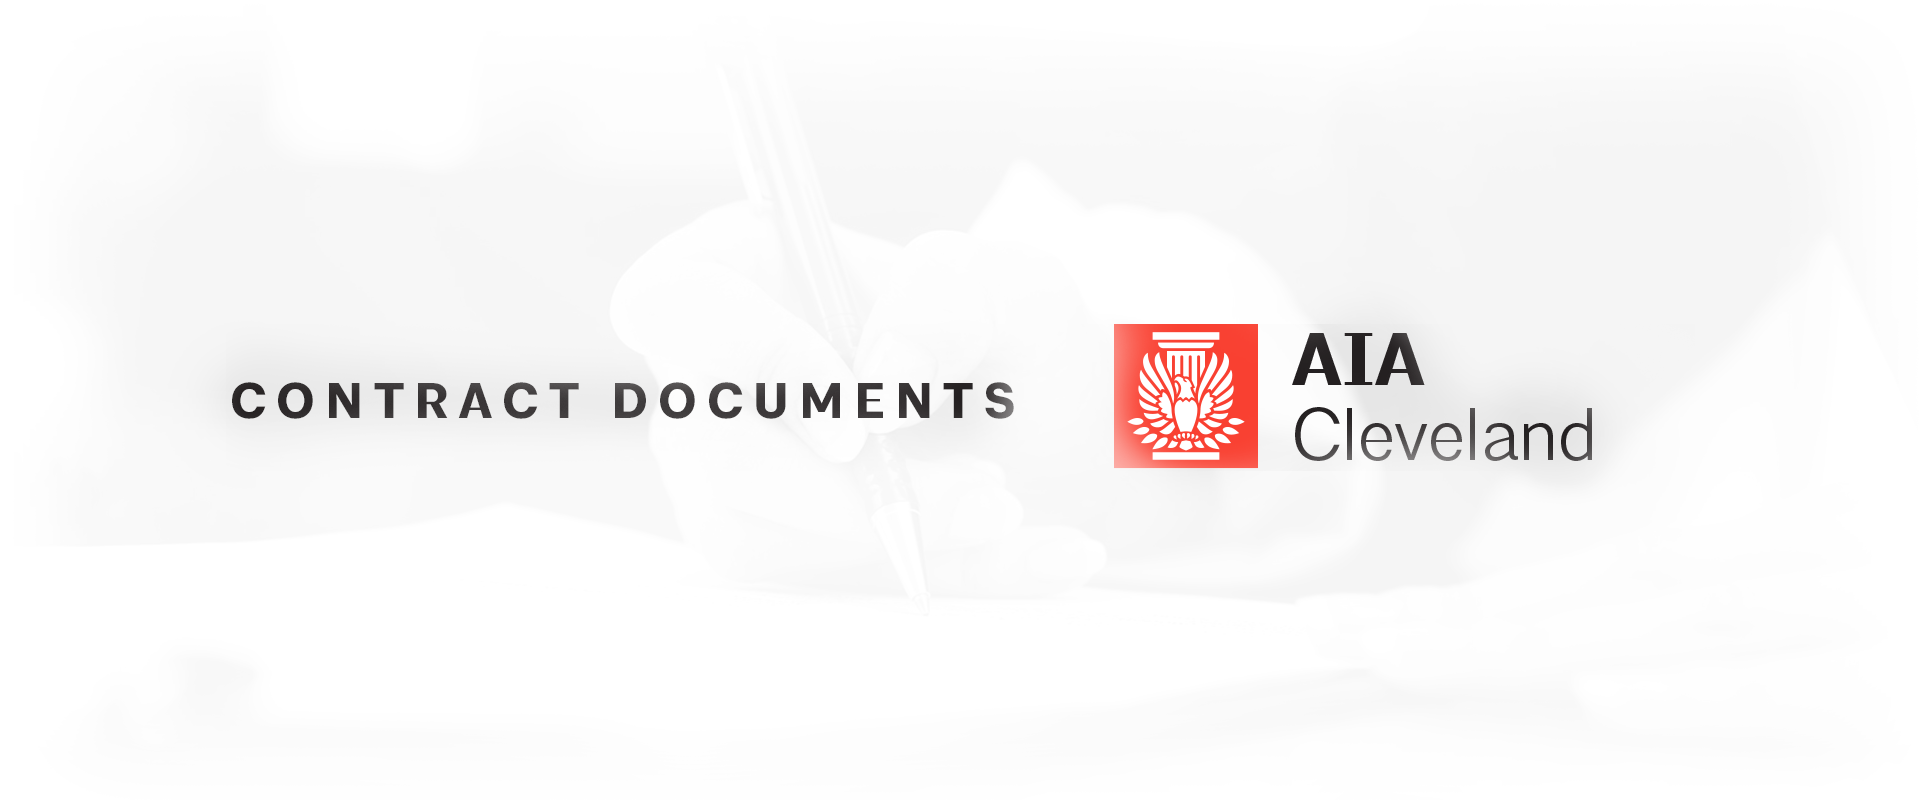 AIA-Contract-Documents.jpg